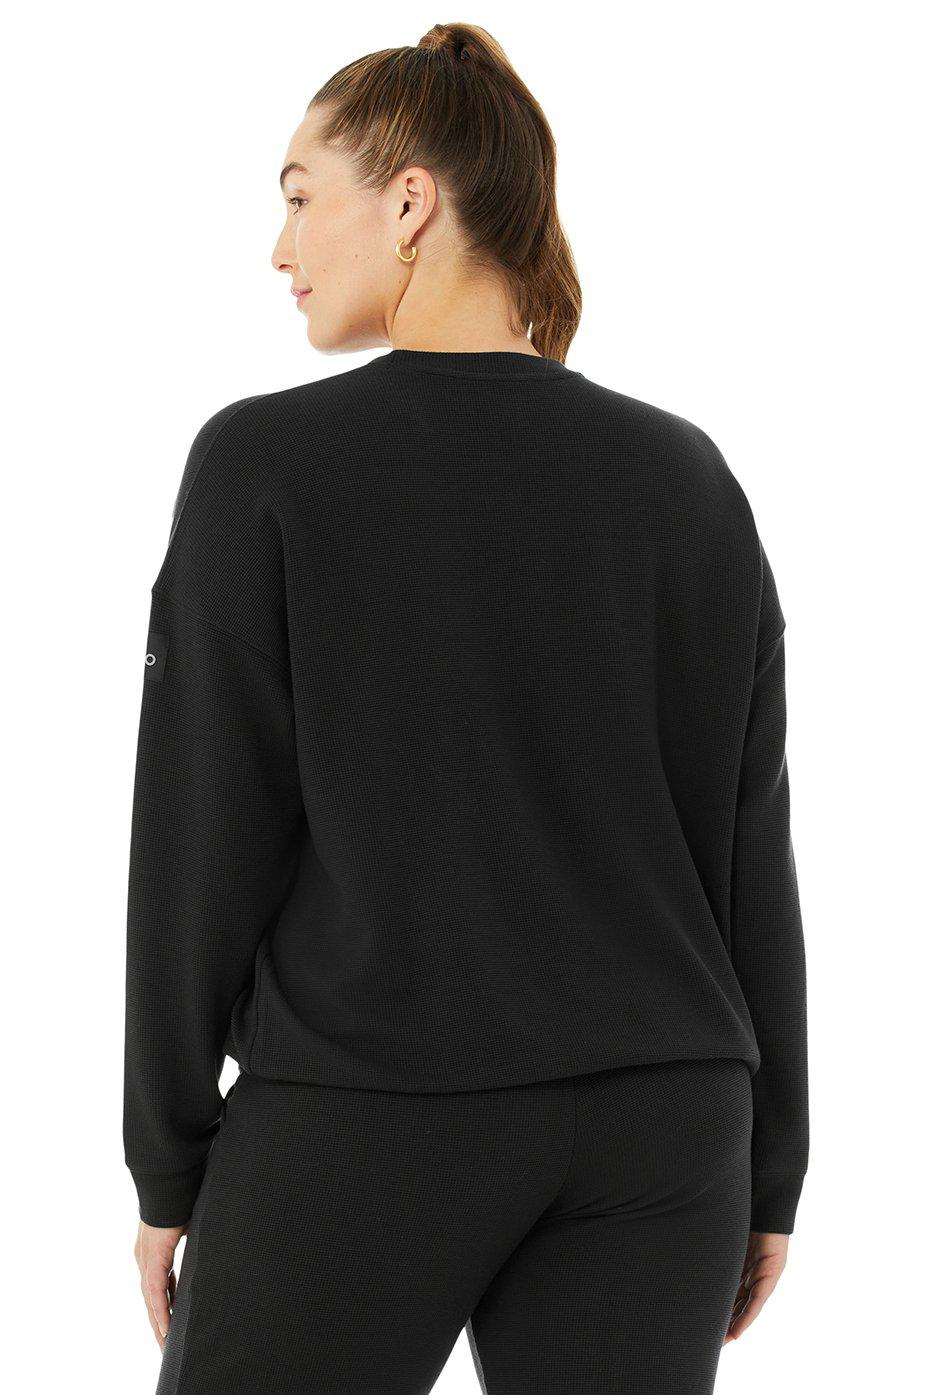 Micro Waffle Relaxation Pullover - Black 7